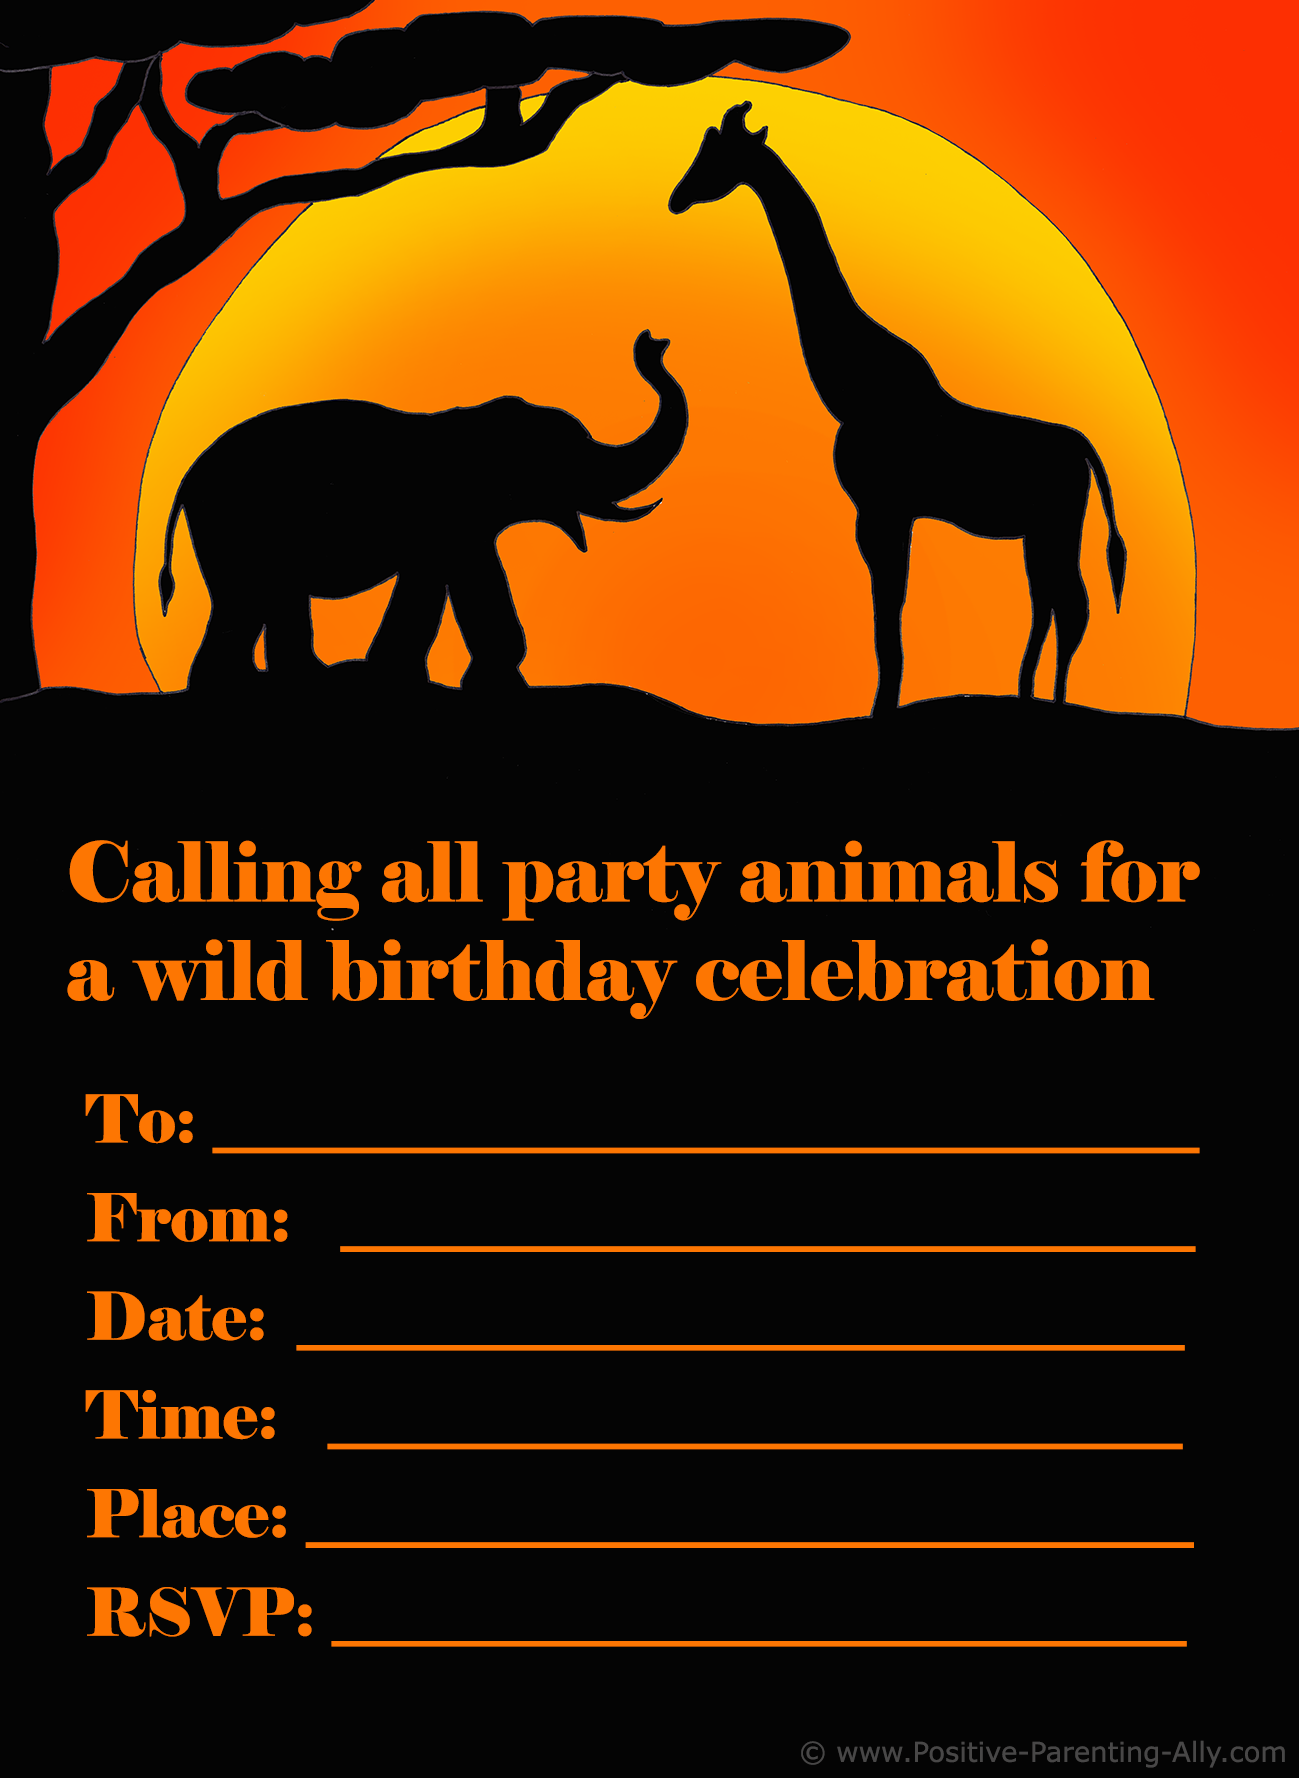 Printable Kids Birthday Invite With African Safari Theme An Elephant And Giraffe Silhouette